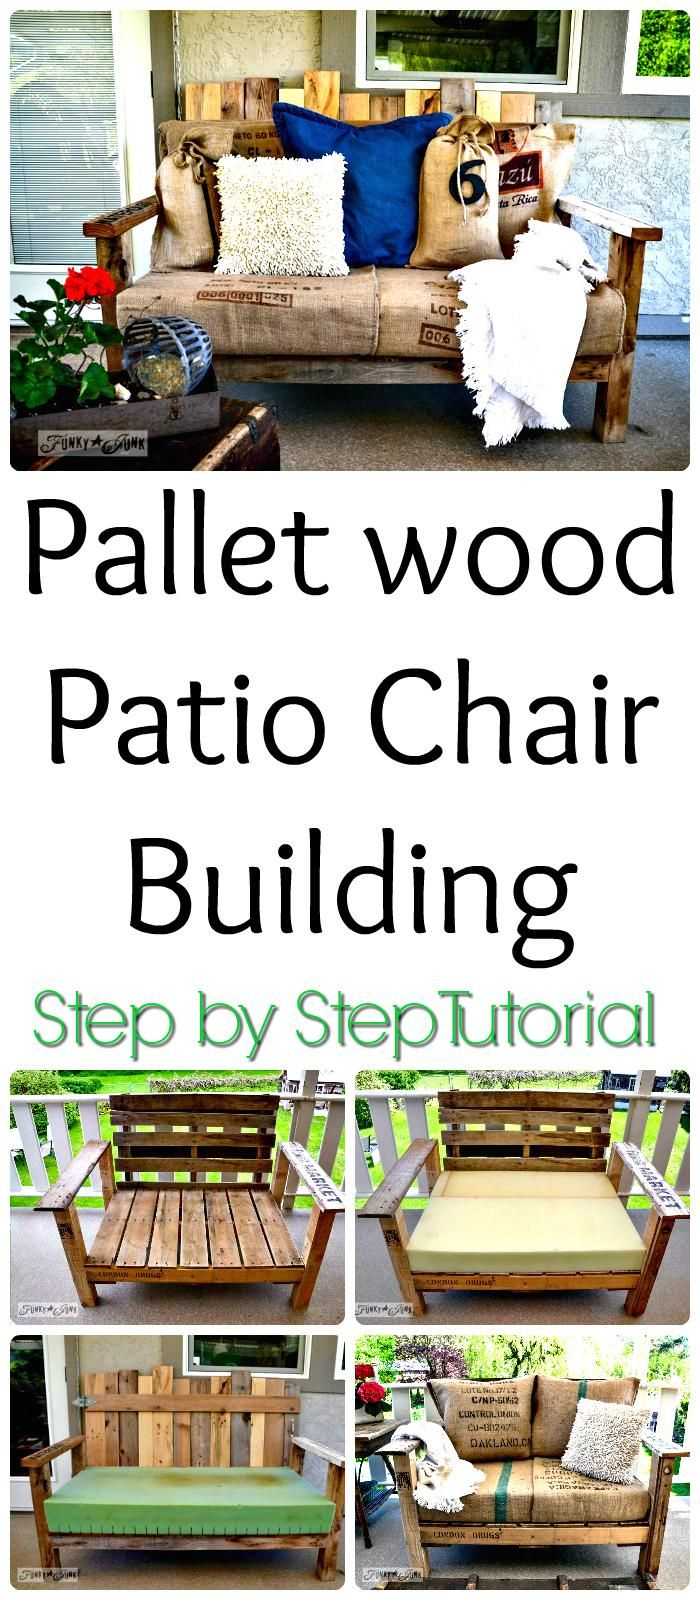 DIY Pallet Cushioned Patio Chair Tutorial - 150 Best DIY Pallet Projects and Pallet Furniture Crafts - Page 9 of 75 - DIY & Crafts